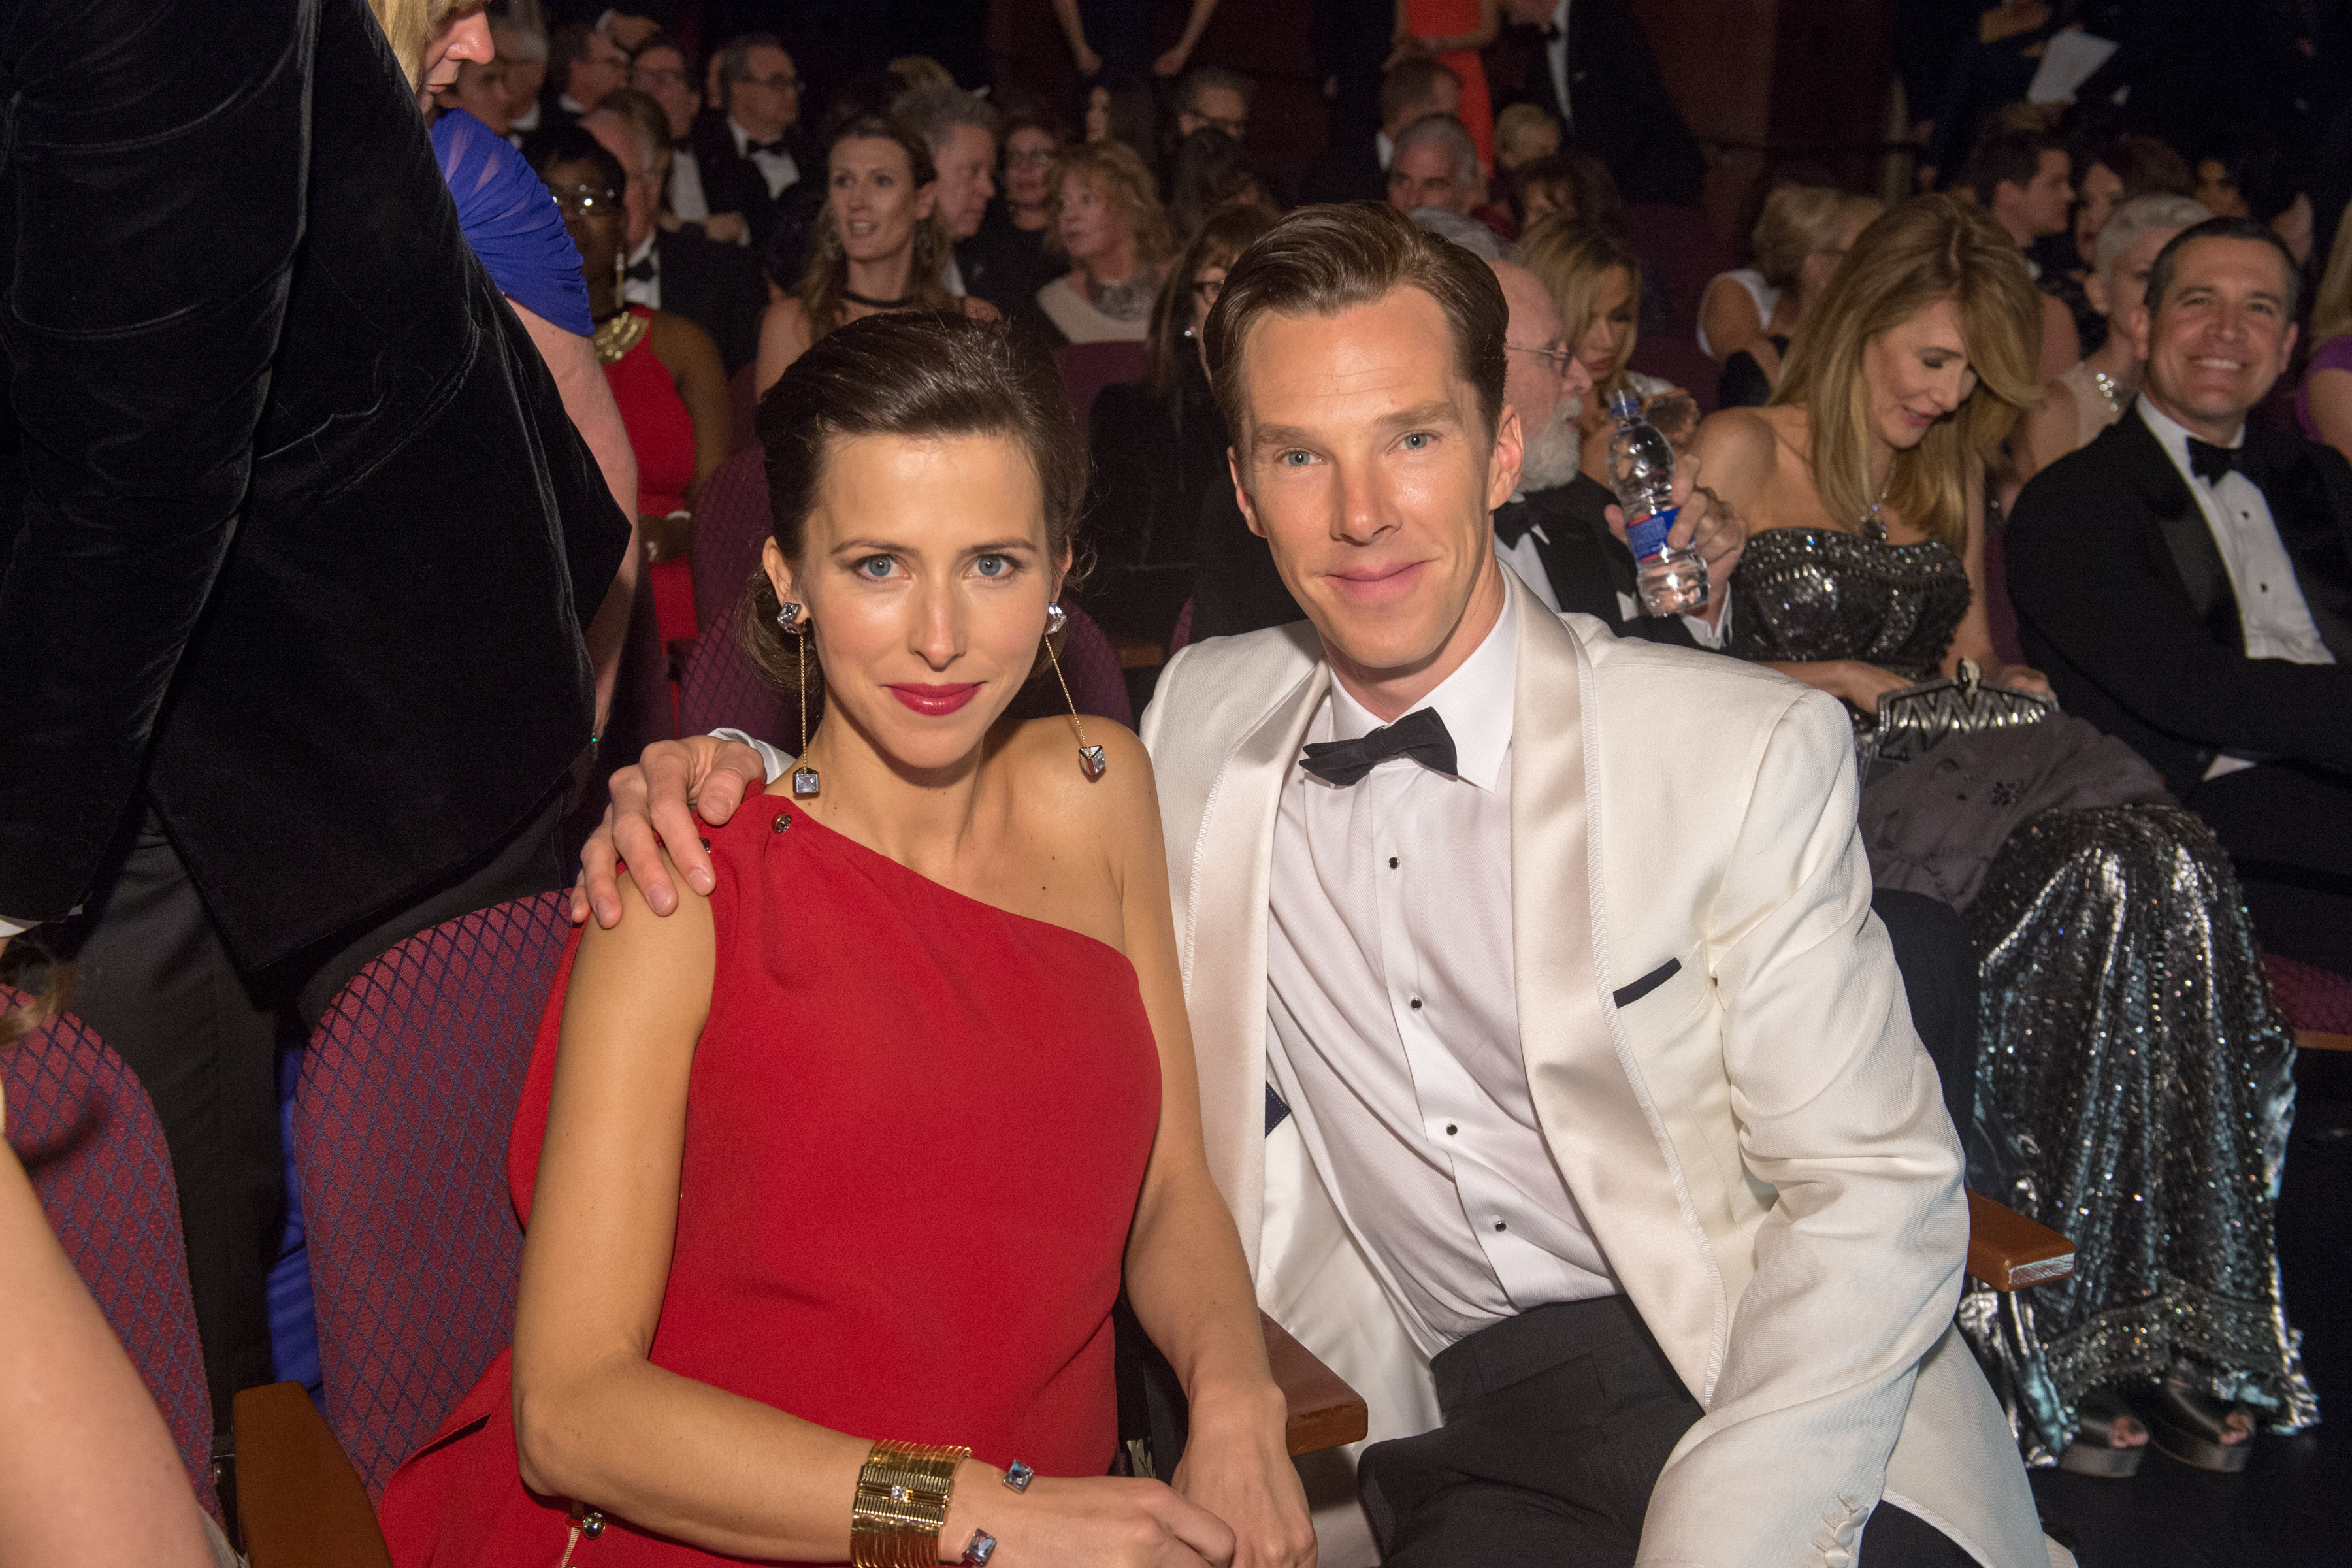 Benedict Cumberbatch with his wife, Sophie Hunter. Photo: REX